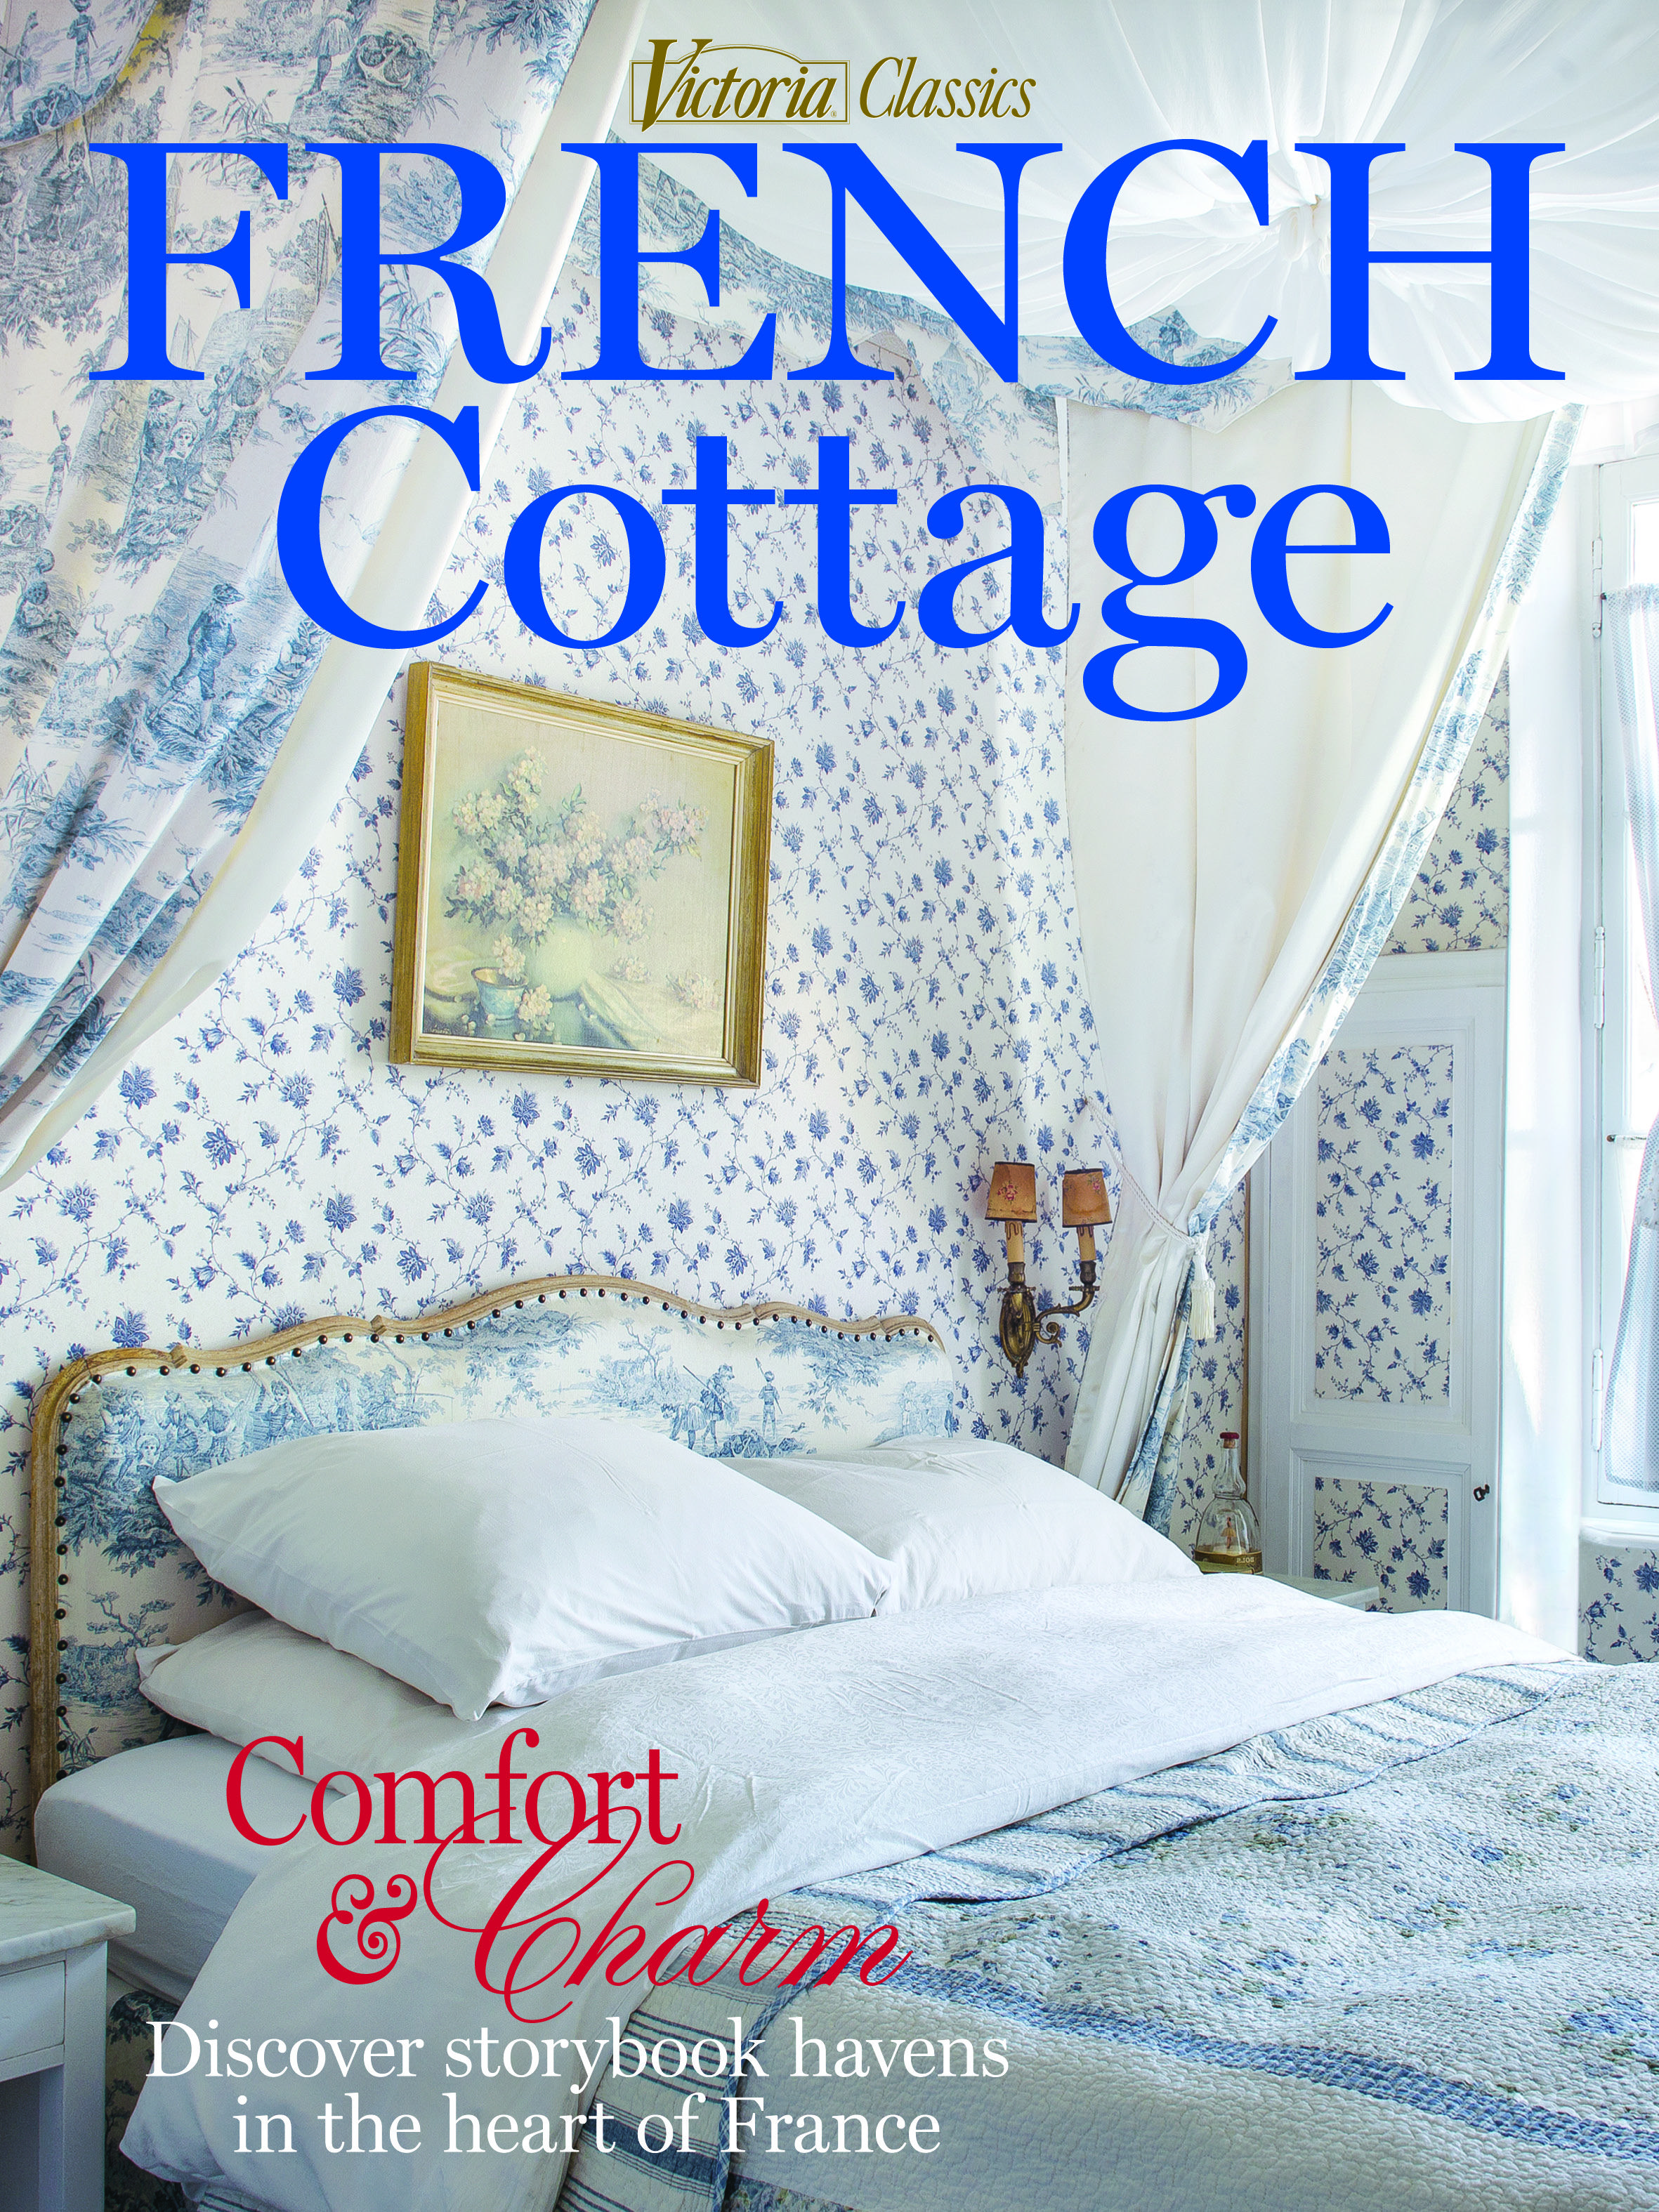 Wondrous French Cottage 2018 Victoria Magazine Covers In 2019 Home Interior And Landscaping Palasignezvosmurscom